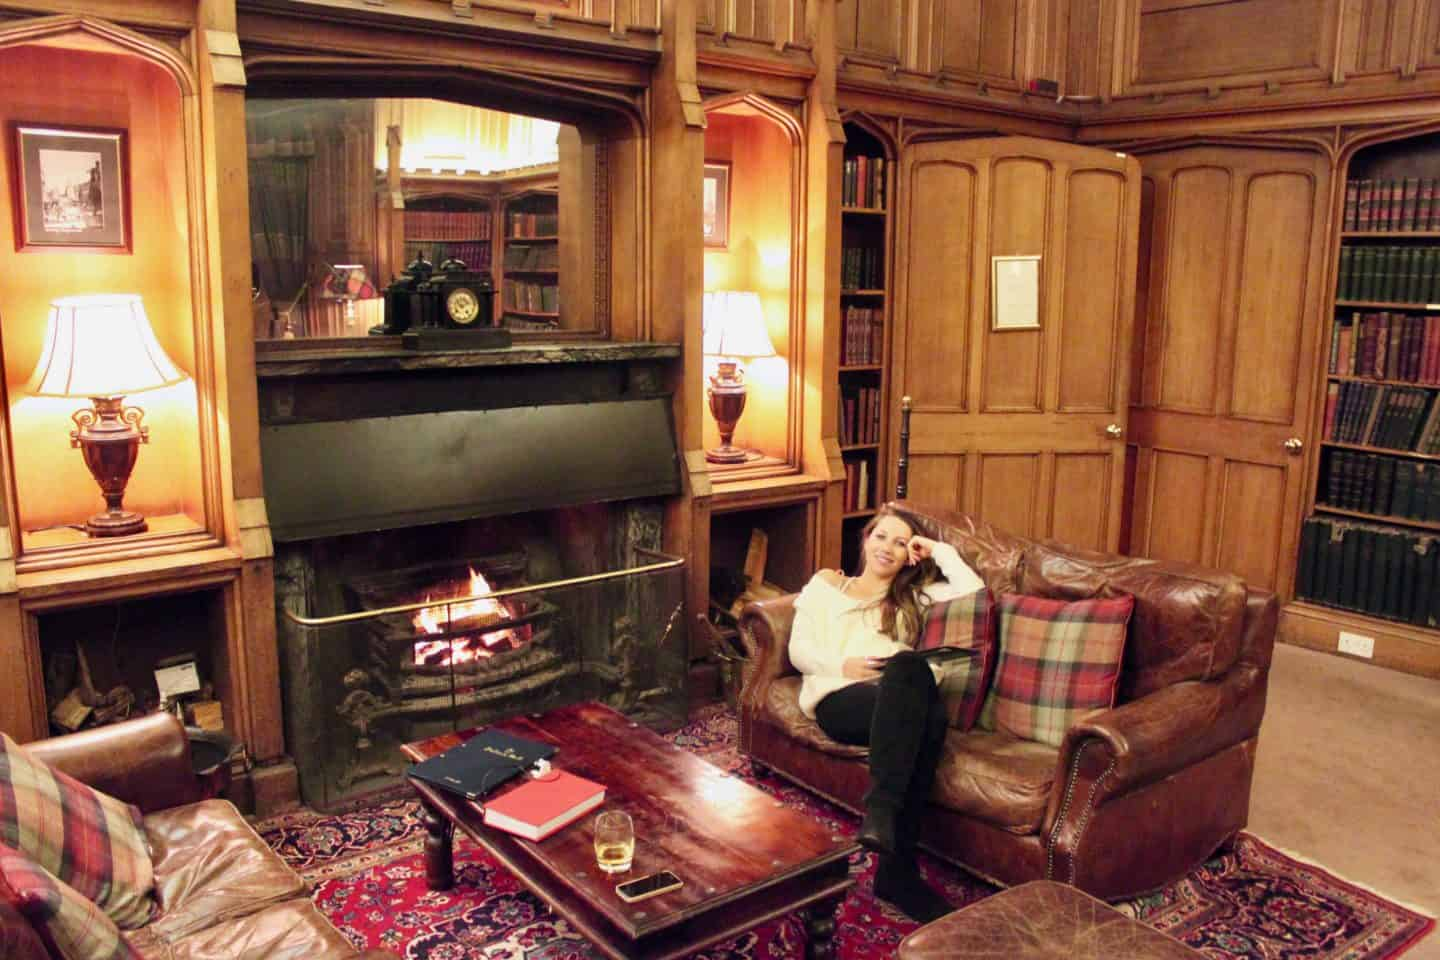 Library Bar at Dalhousie Hotel Edinburgh